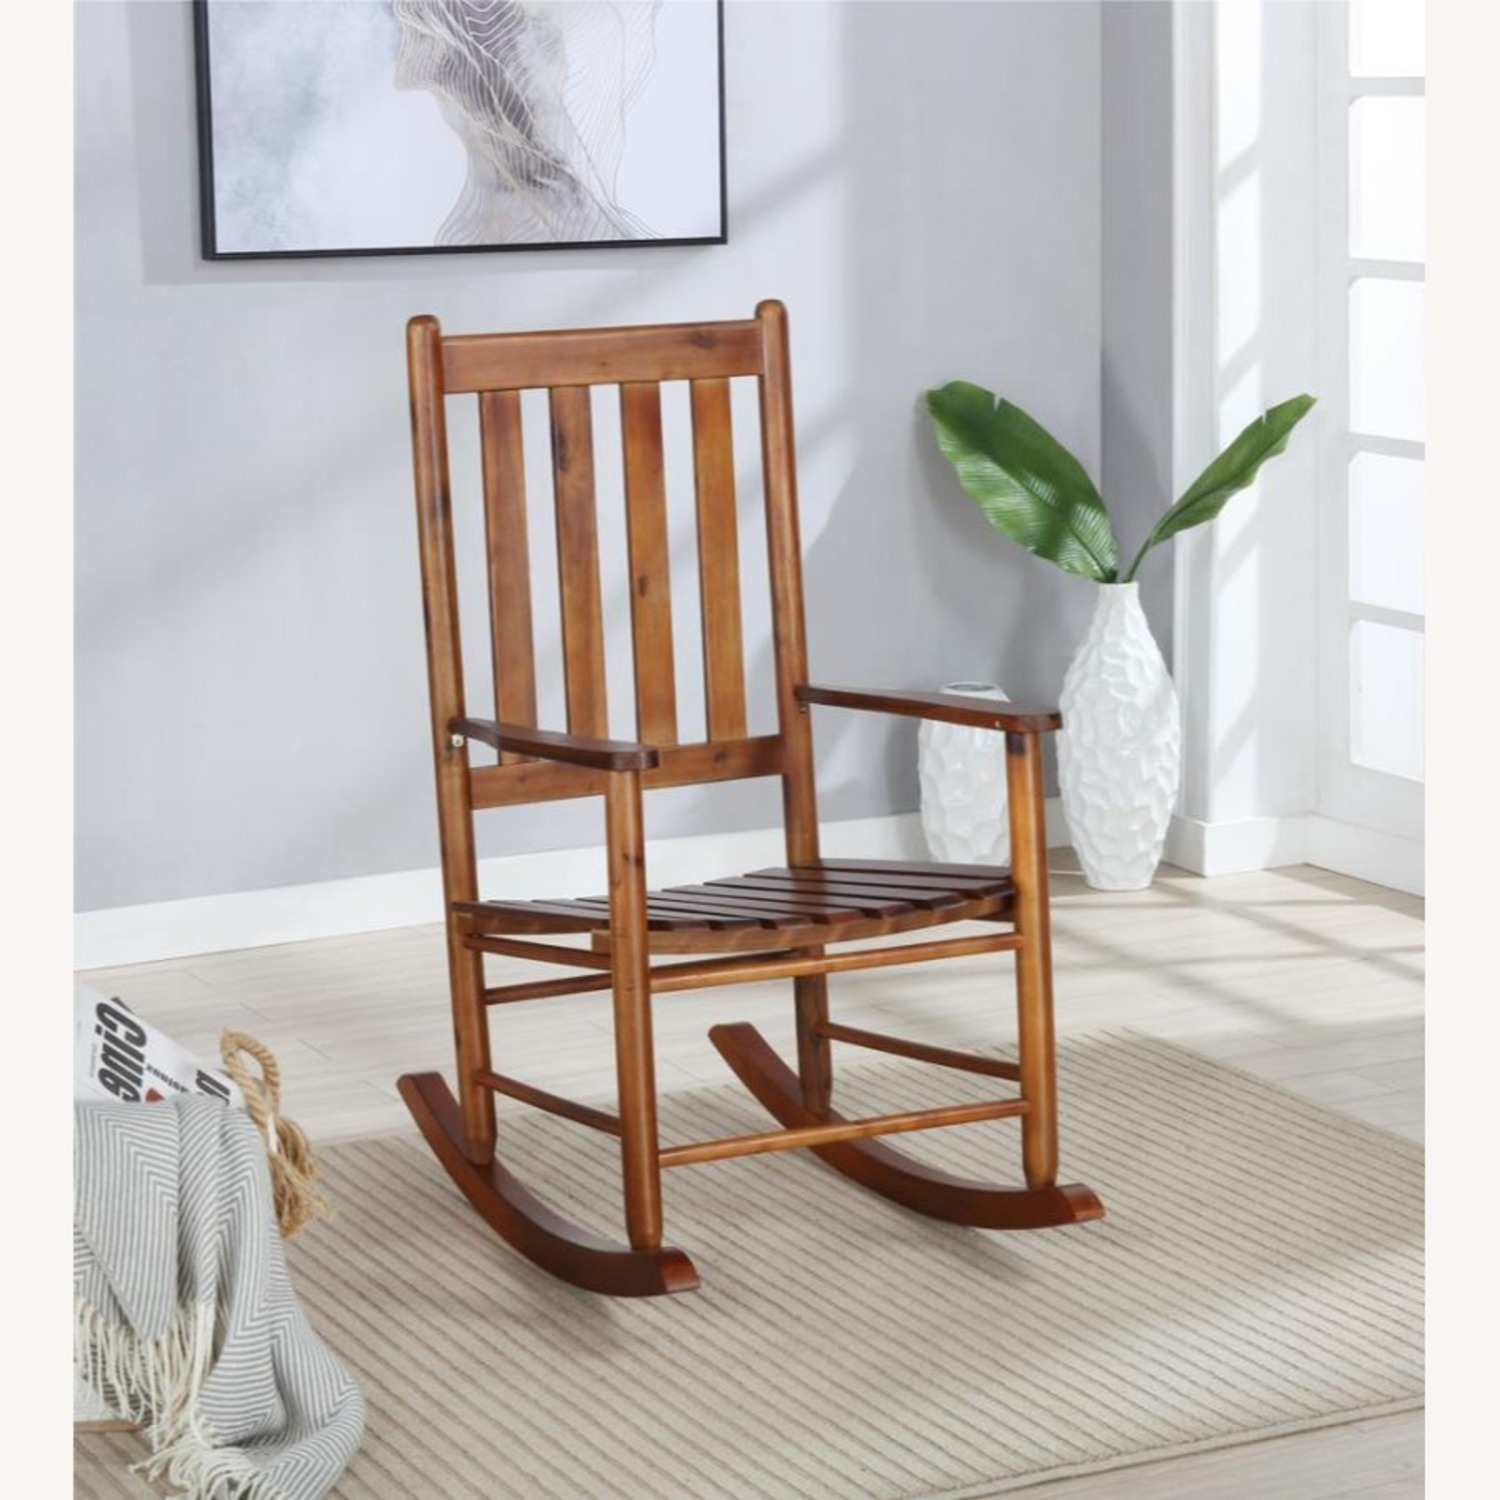 Rocking Chair In Golden Brown Acacia Wood Finish - image-1